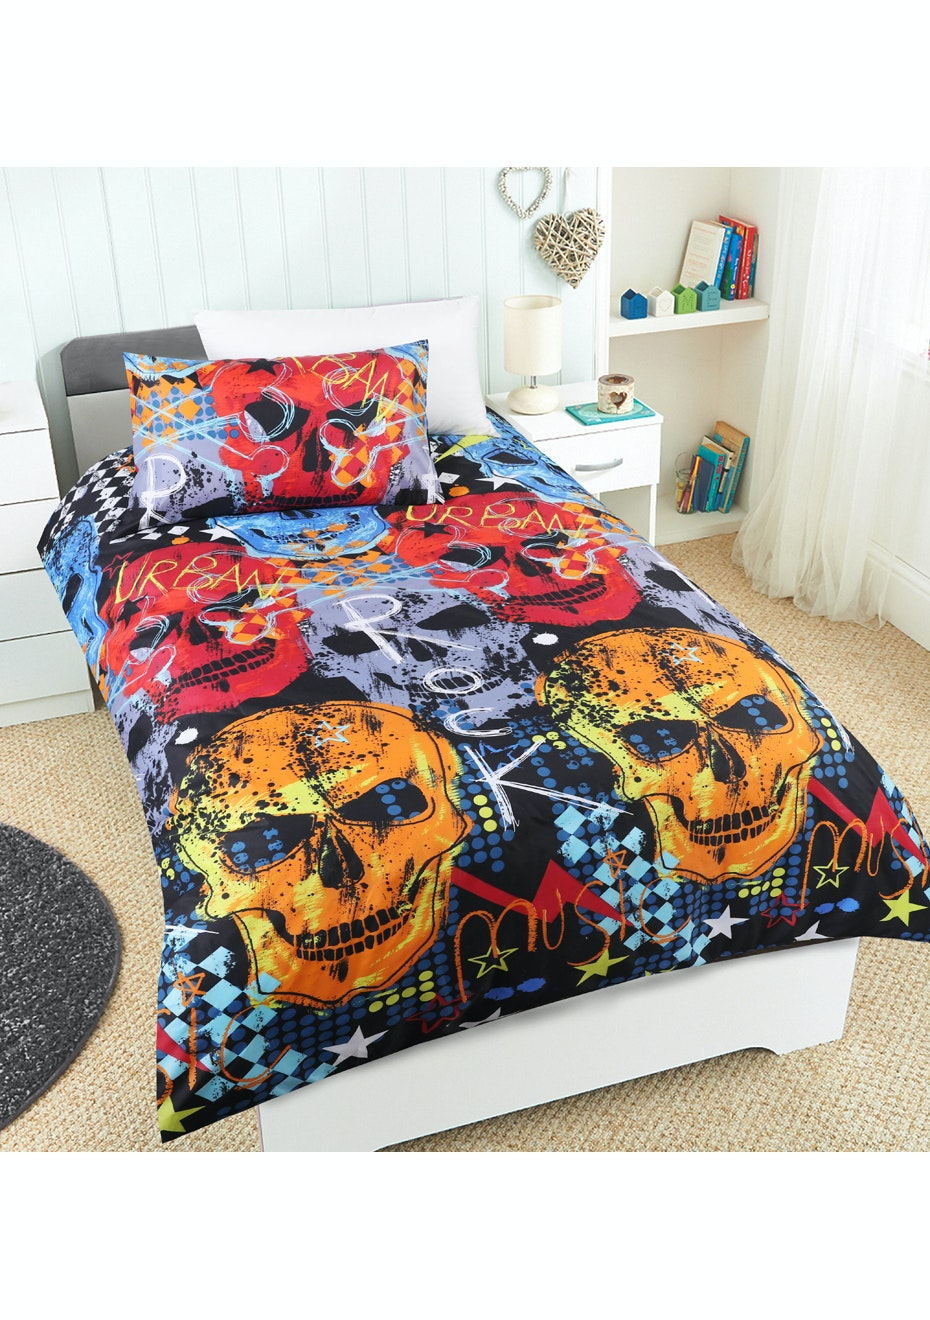 Rock Star Glow in the Dark Quilt Cover Set - Double Bed